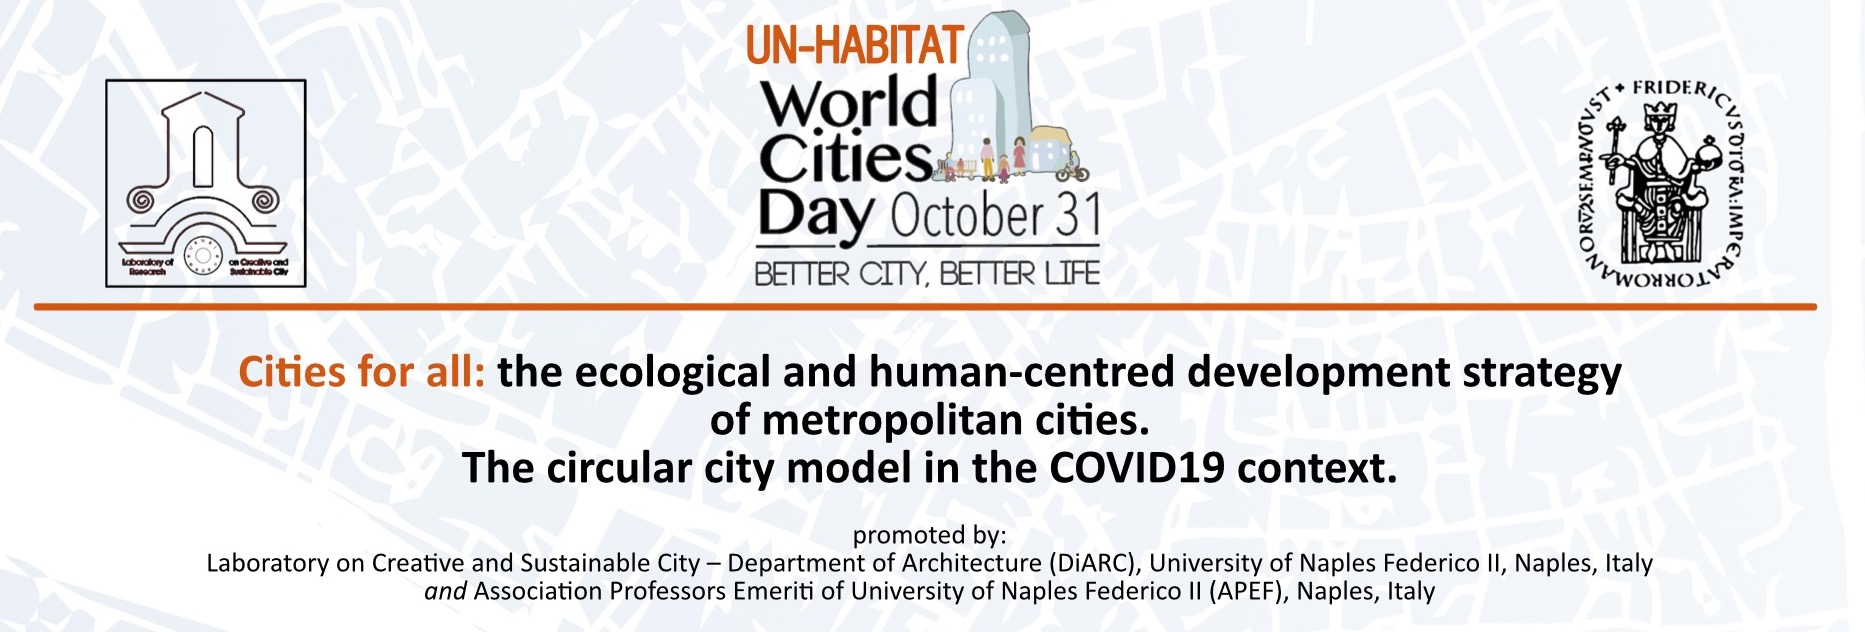 Participation of CLIC Project at UN-HABITAT World Cities Day Cities for all: the ecological and human-centred development strategy of metropolitan cities. The circular city model in the COVID-19 context